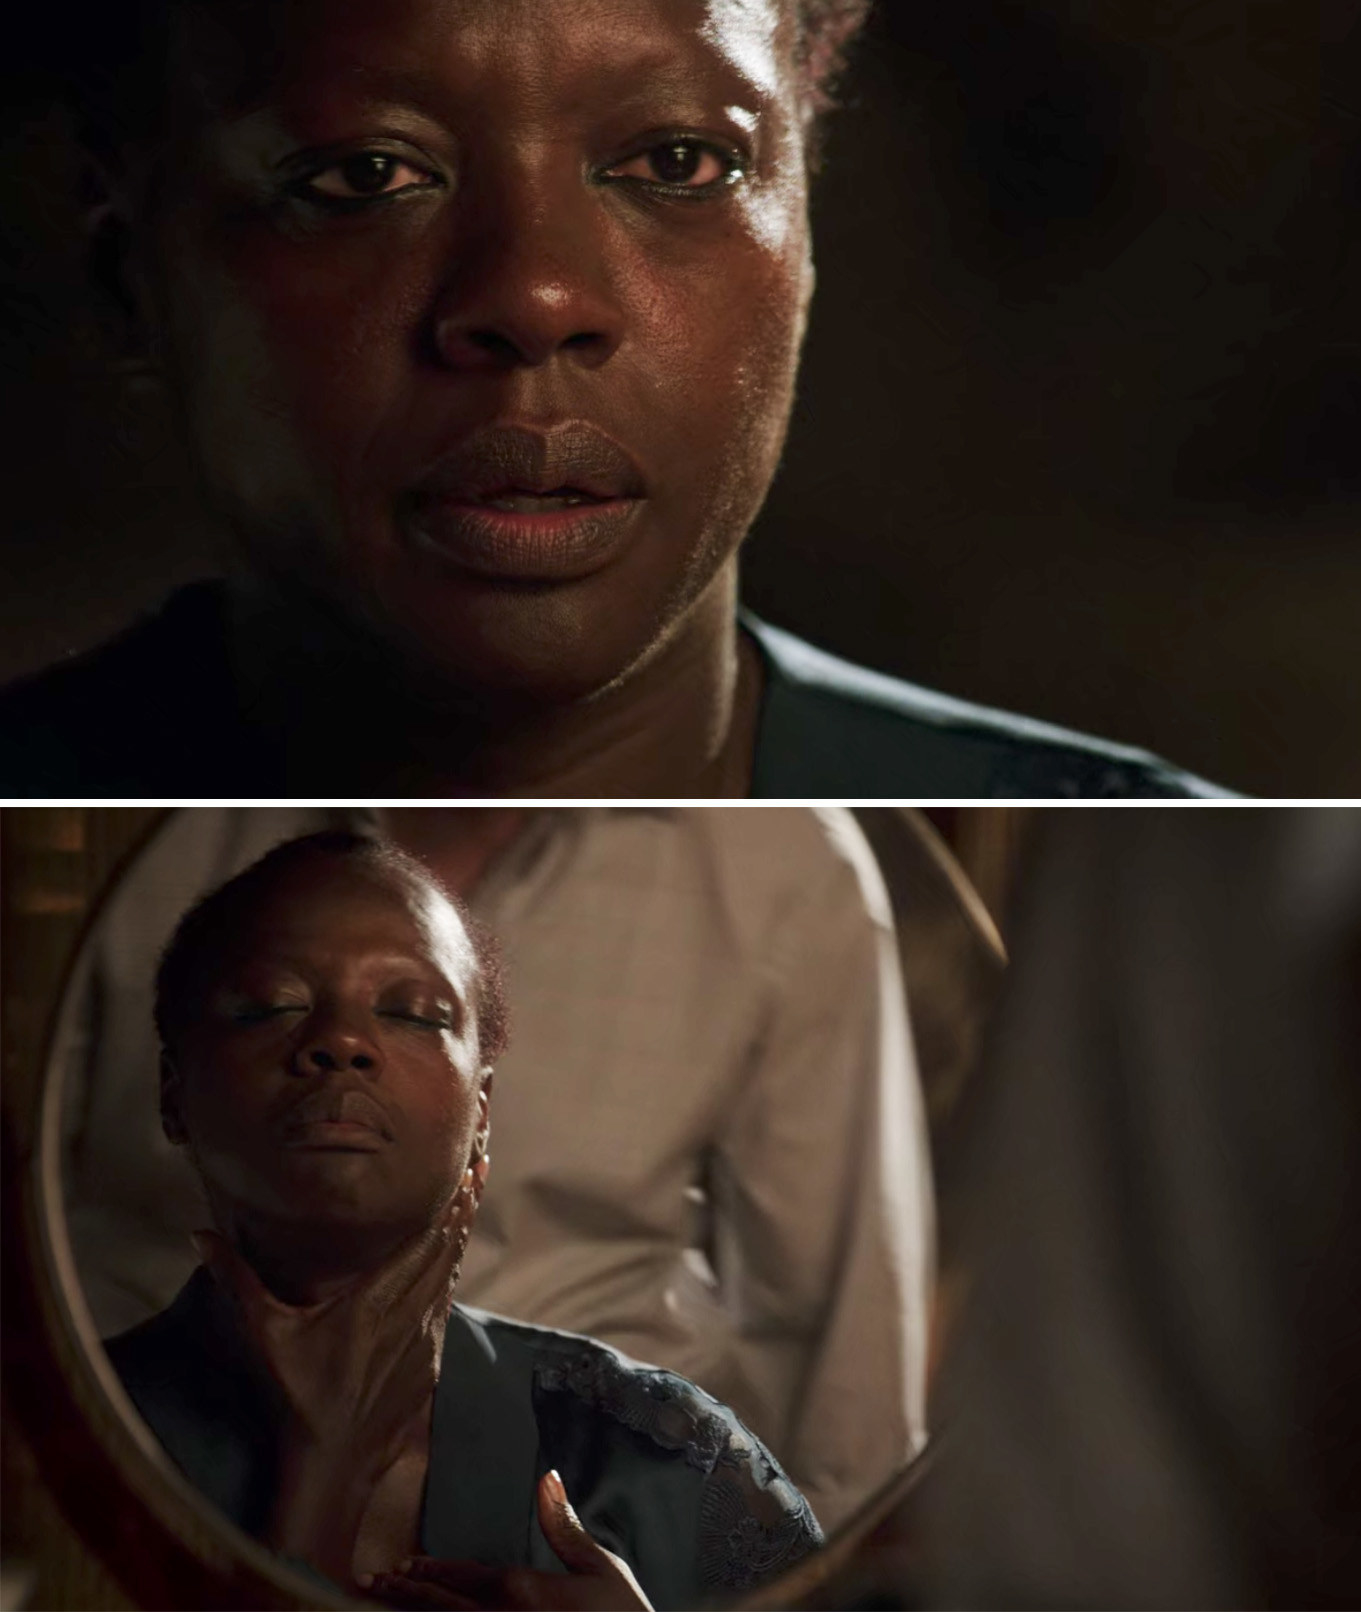 Annalise looking at the mirror and wiping her makeup off